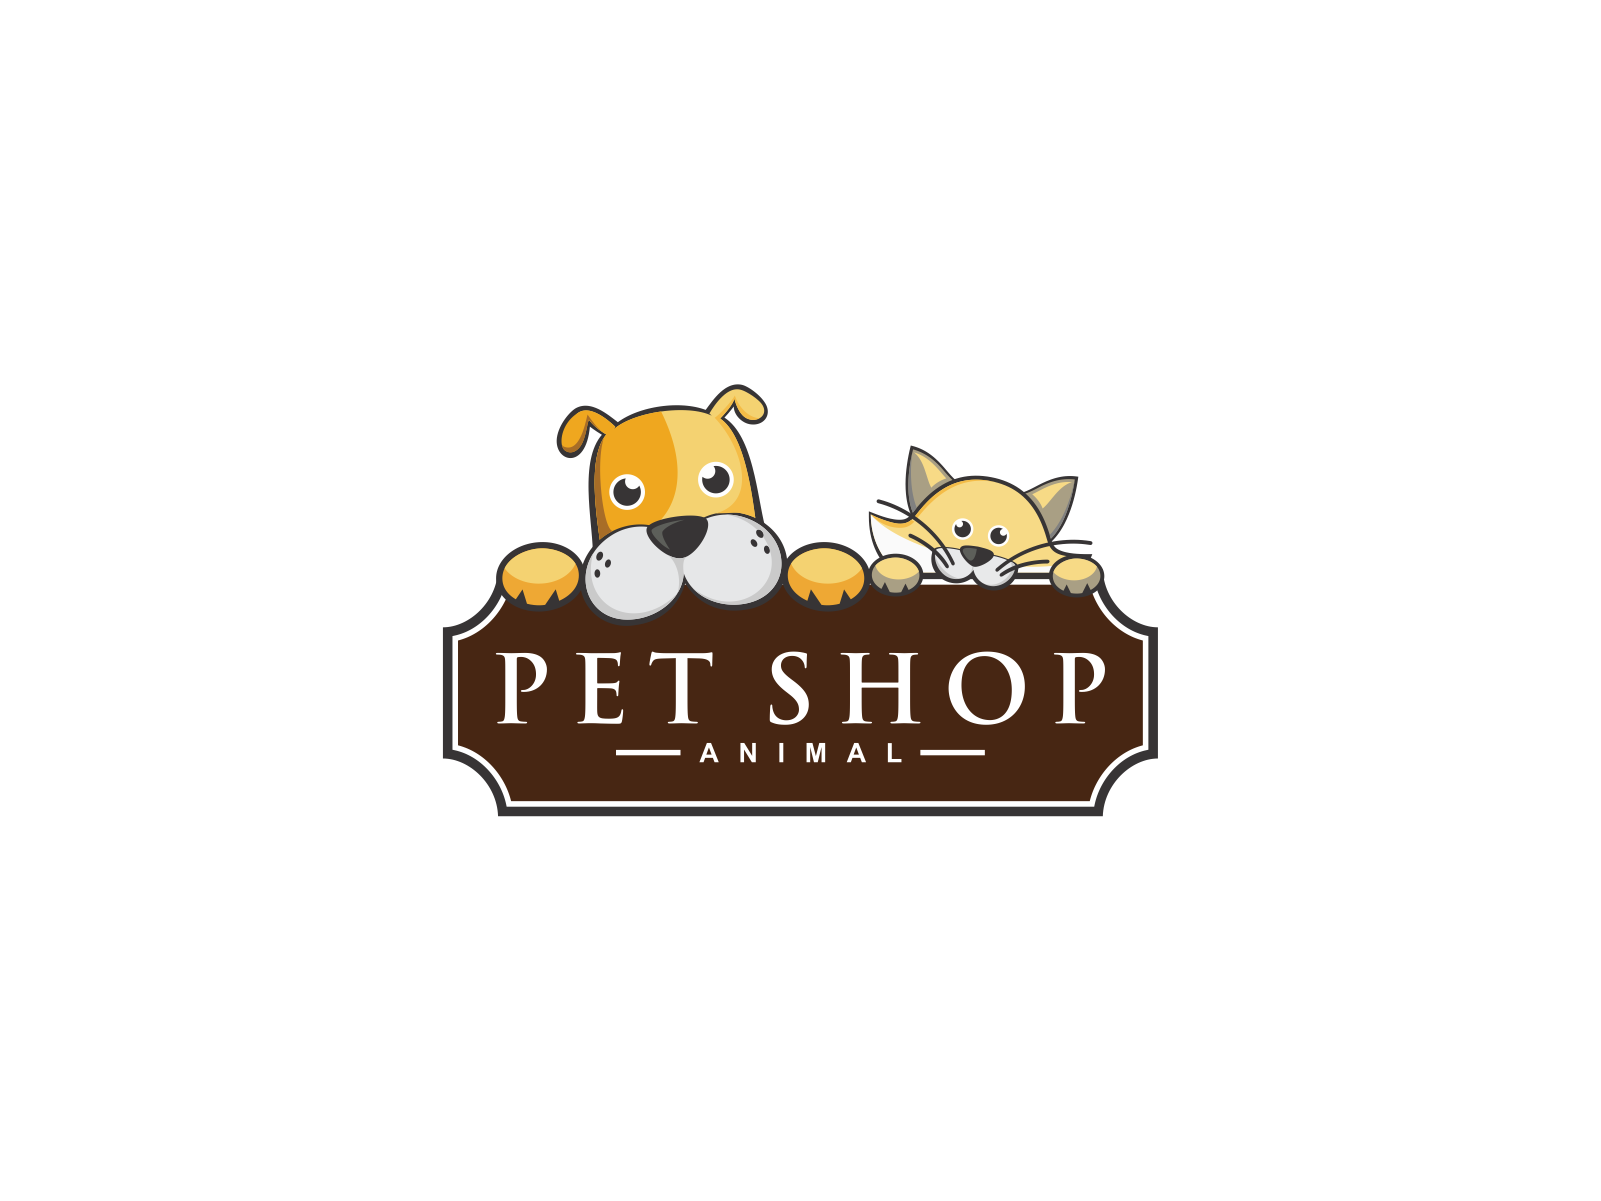 Pet Shop  by Meremelek  a perfect logo for Animals & Pets